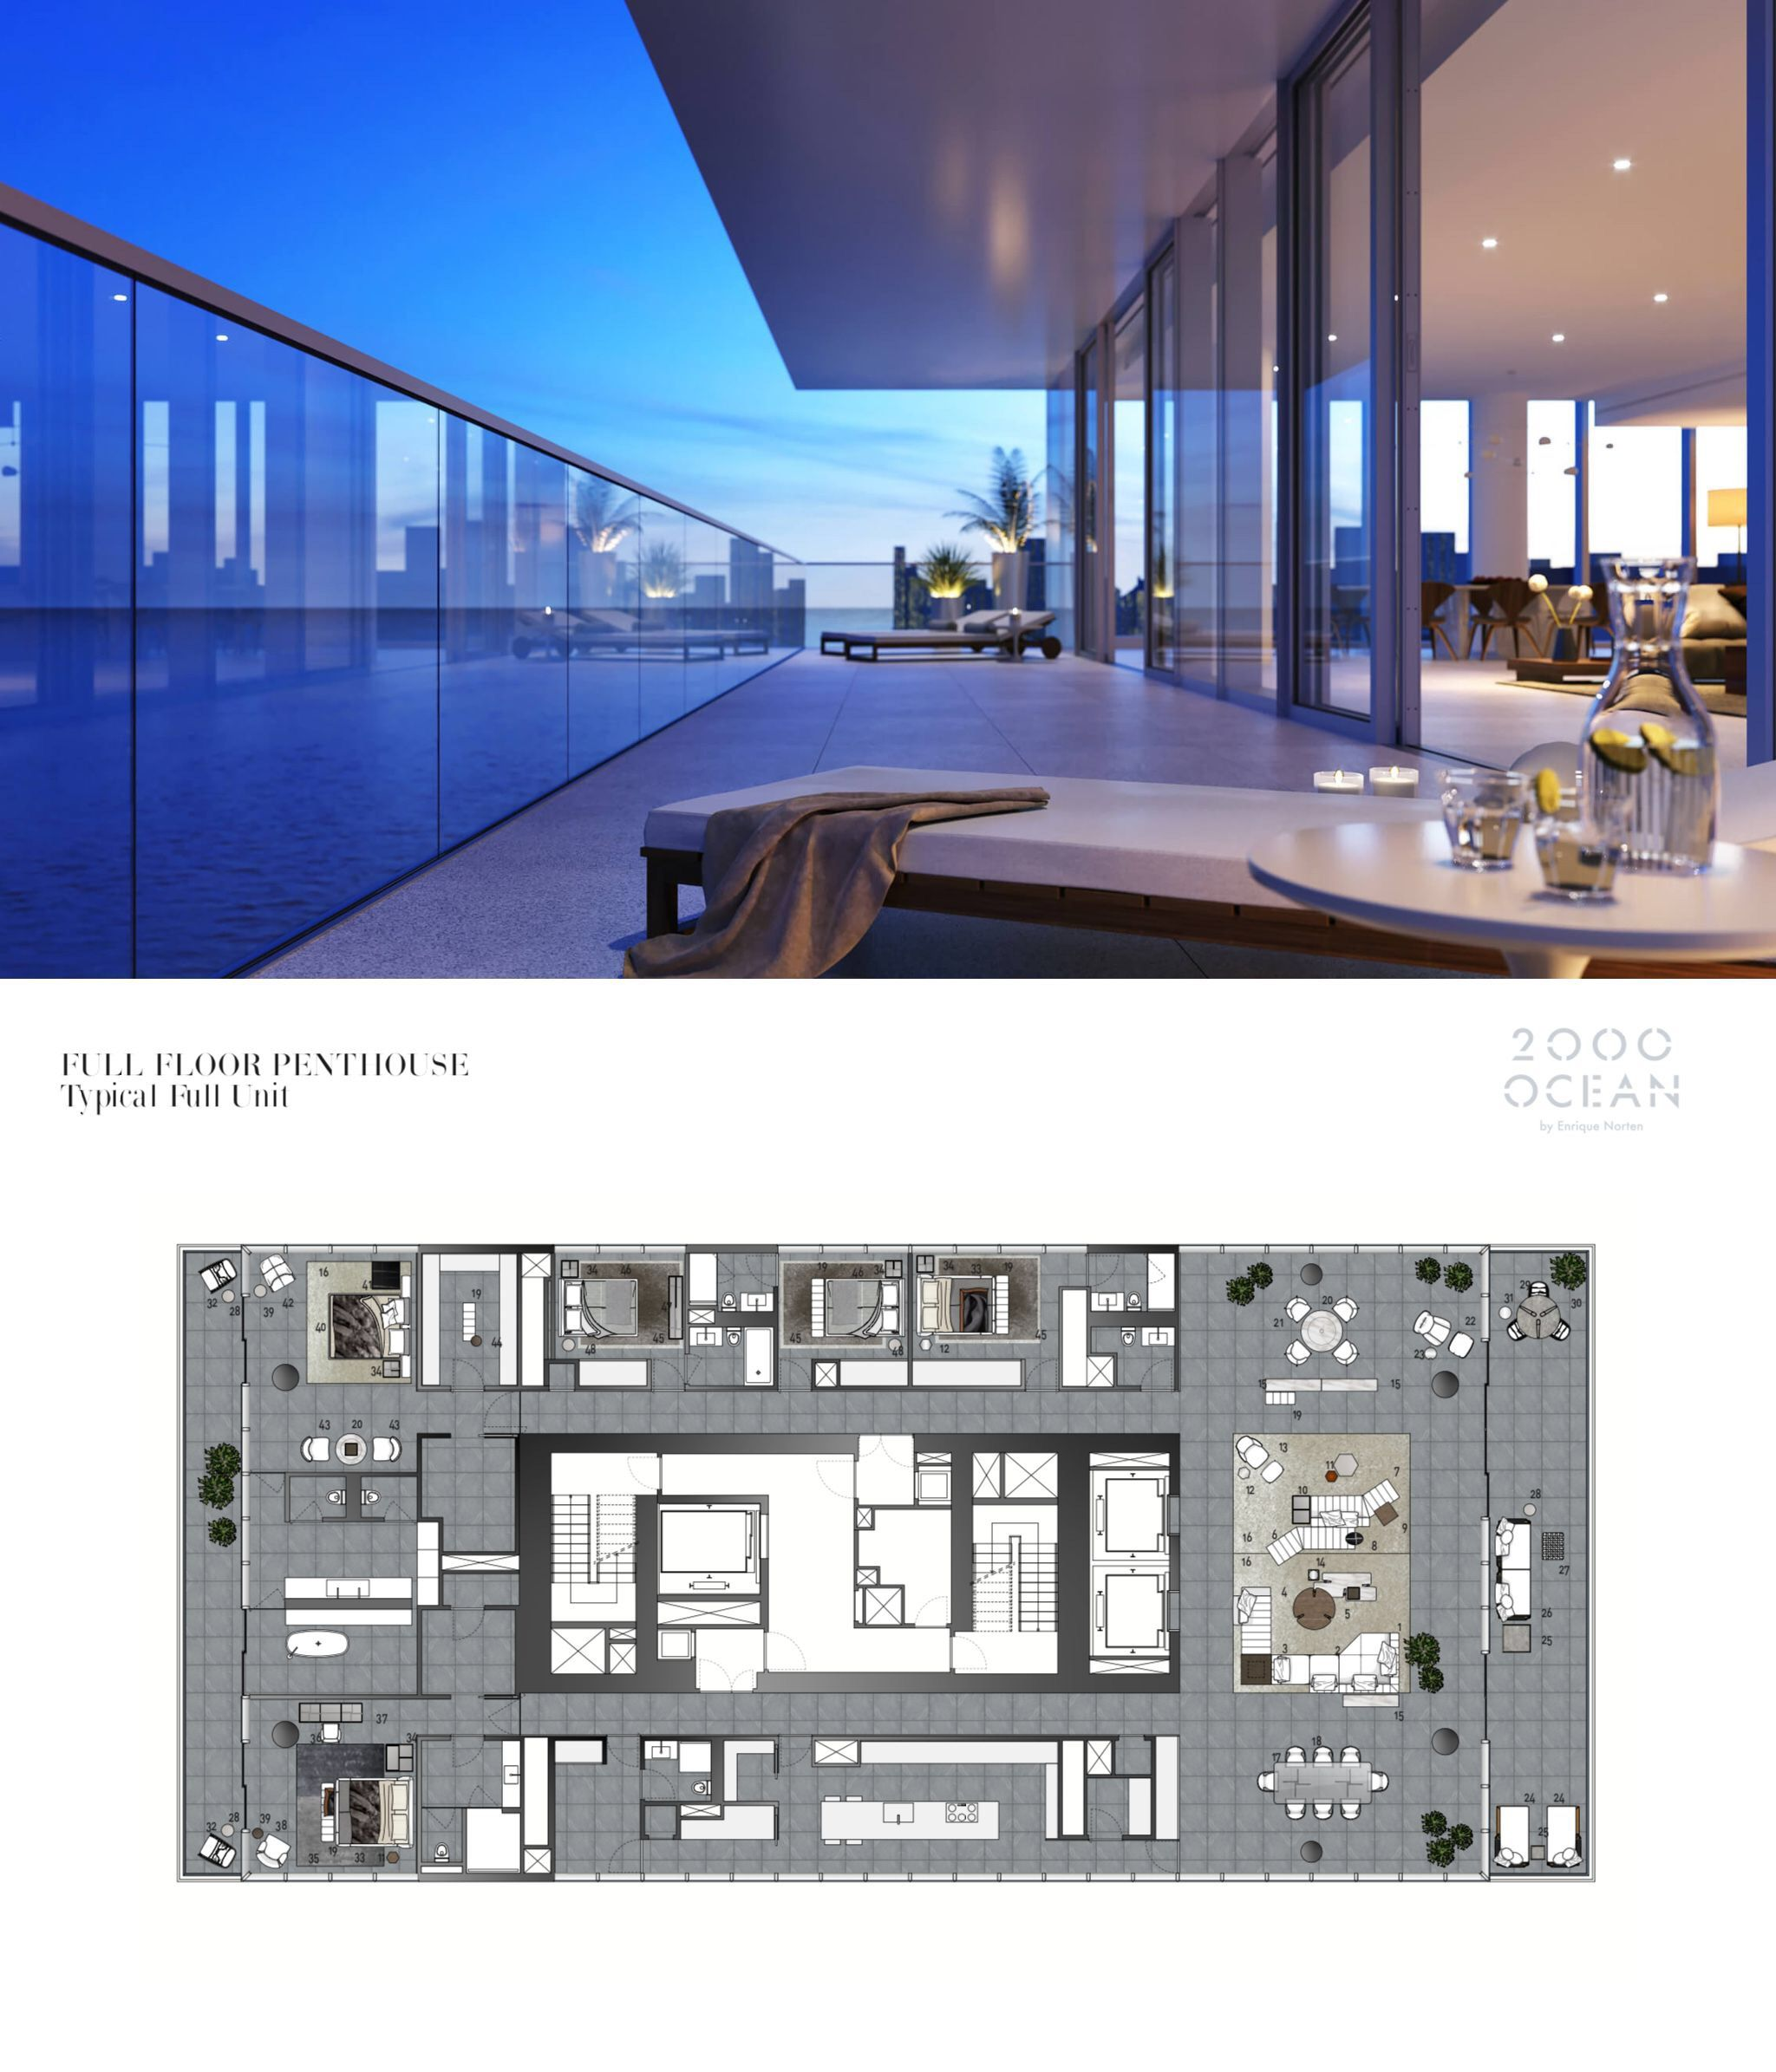 New Condos And Apartments Rise Up Around: 2000 Ocean, Hallandale Beach, FL Full Floor Penthouse